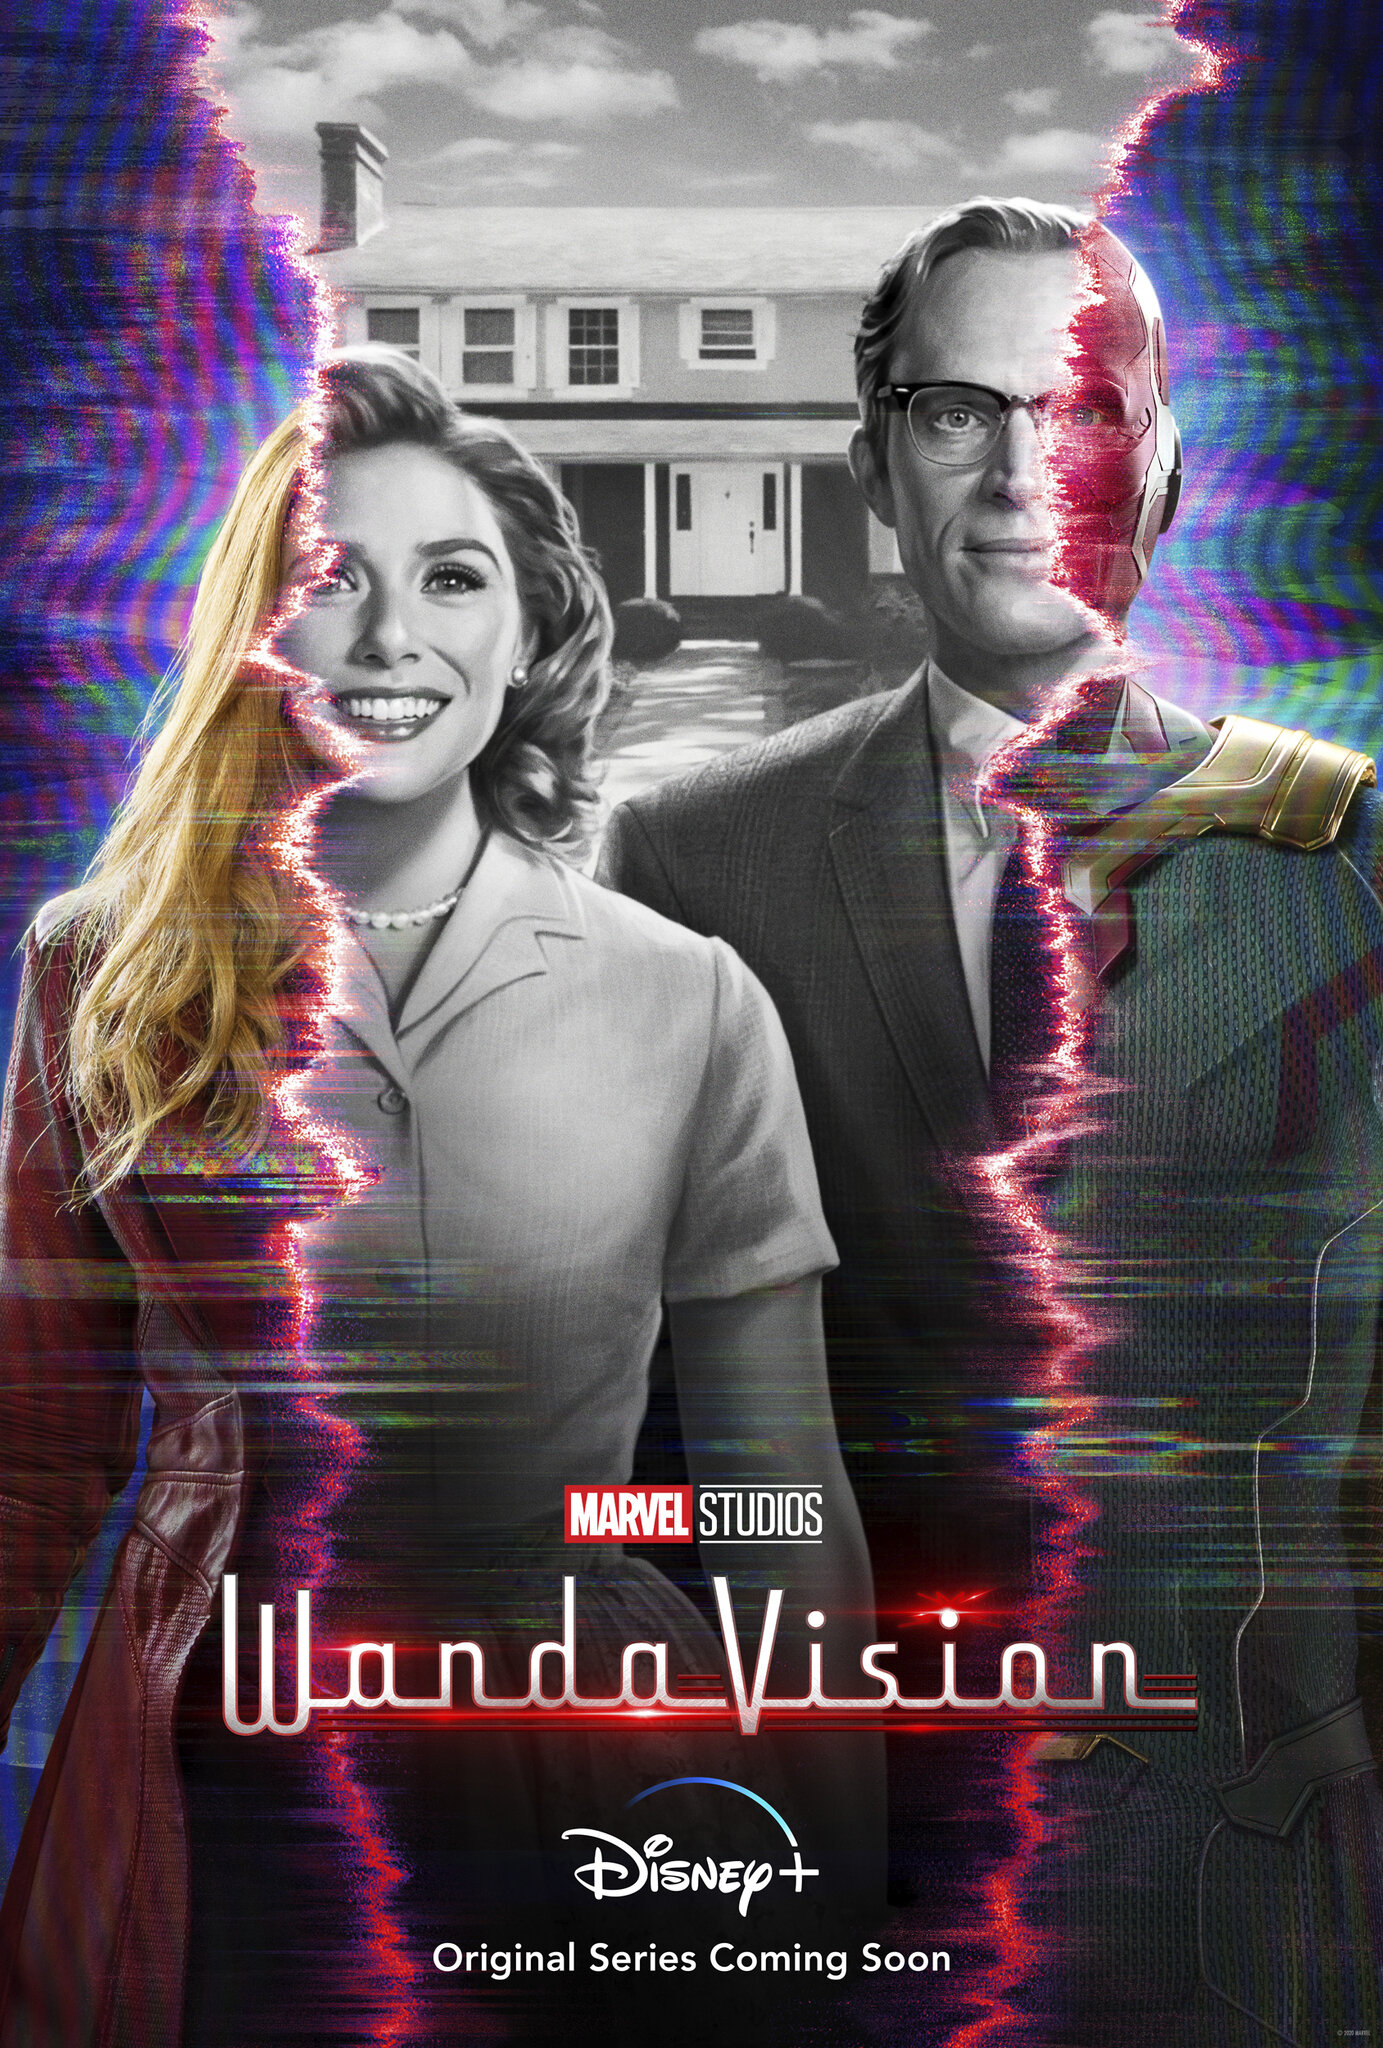 Great First Trailer and Poster For Marvel's WANDAVISION Disney+ Series1